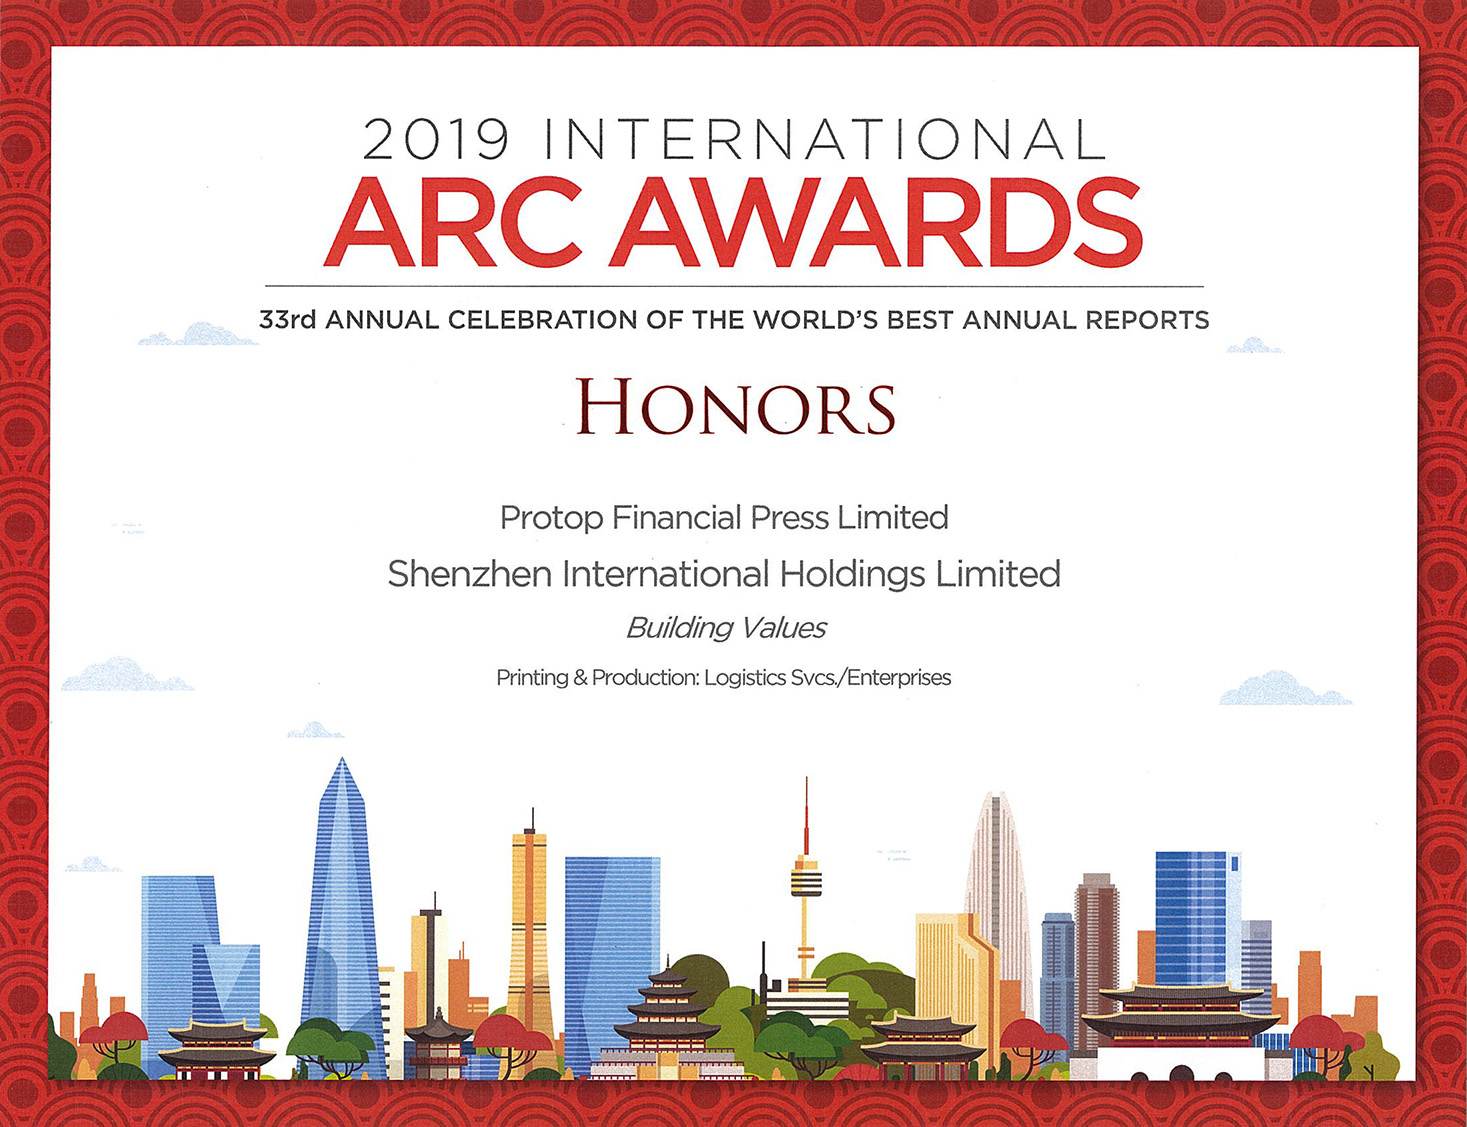 Shenzhen International Holdings Limited – 2019 ARC AWARDS HONORS Printing & Production: Logistics Svcs/Enterprises